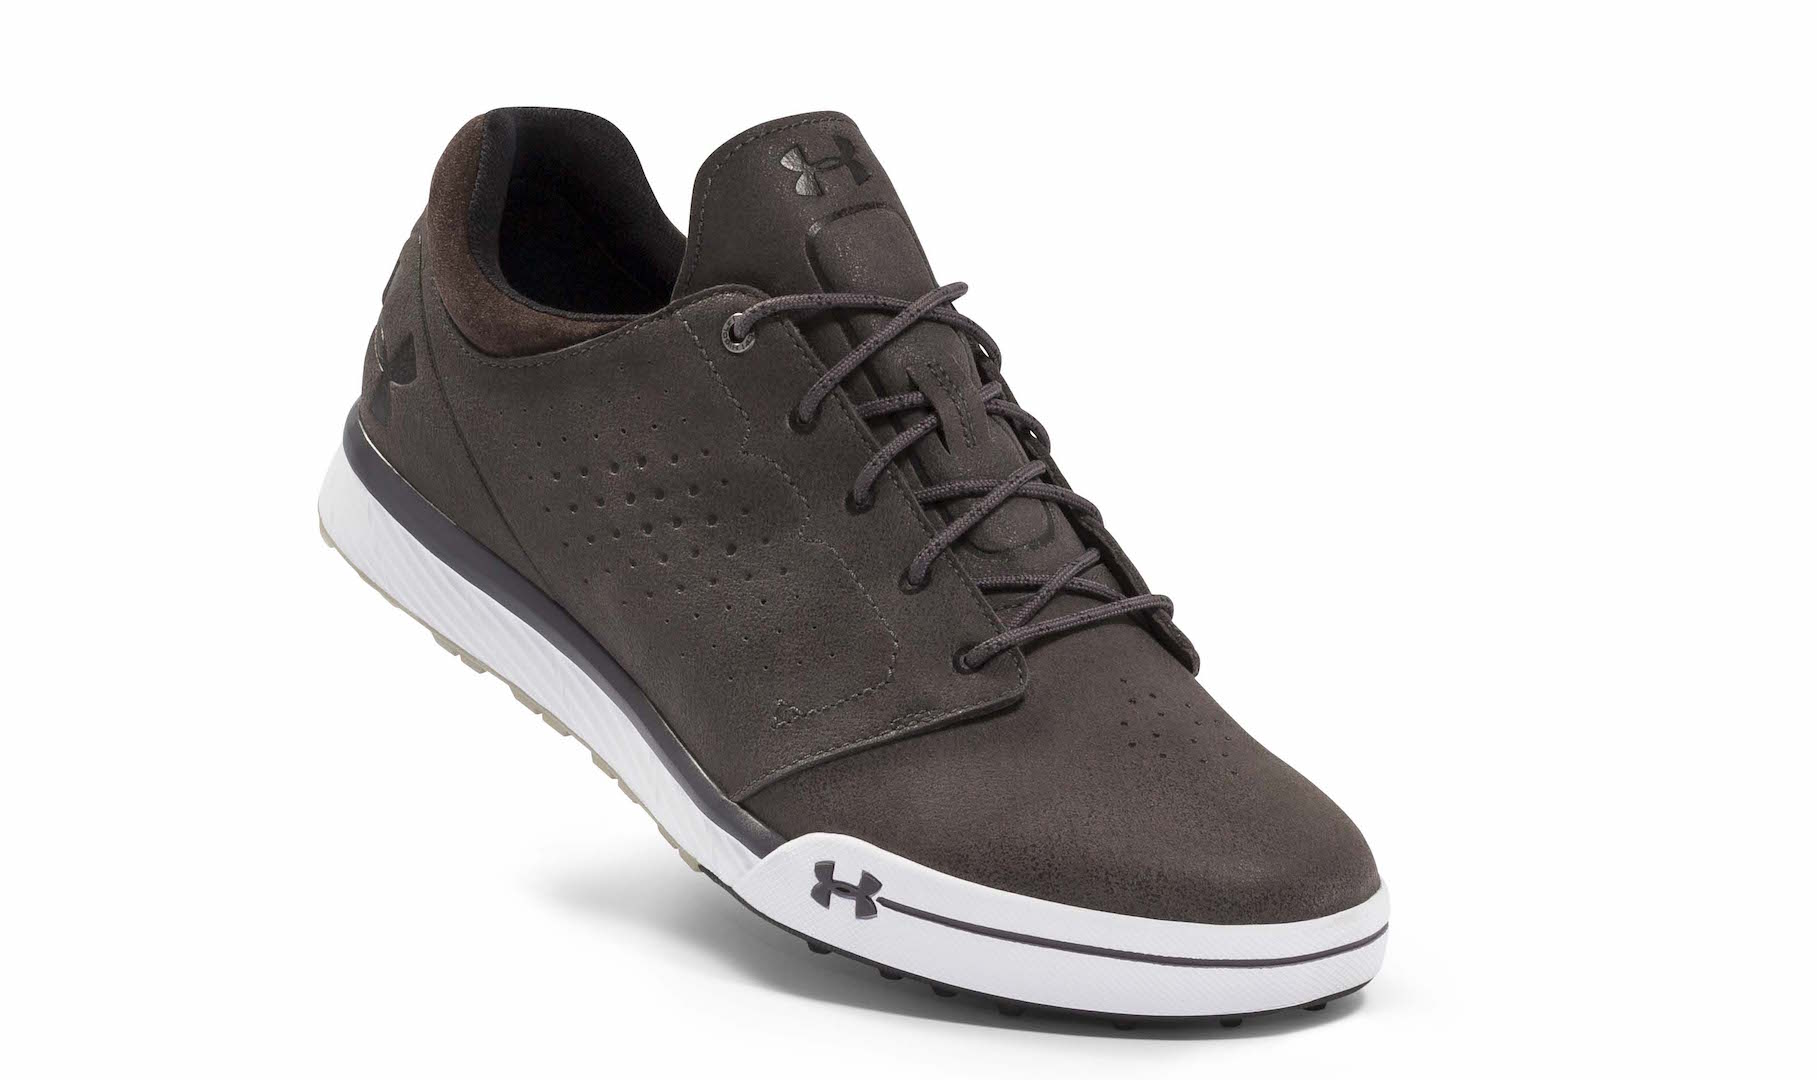 Under Armor Golf Shoes For Sale